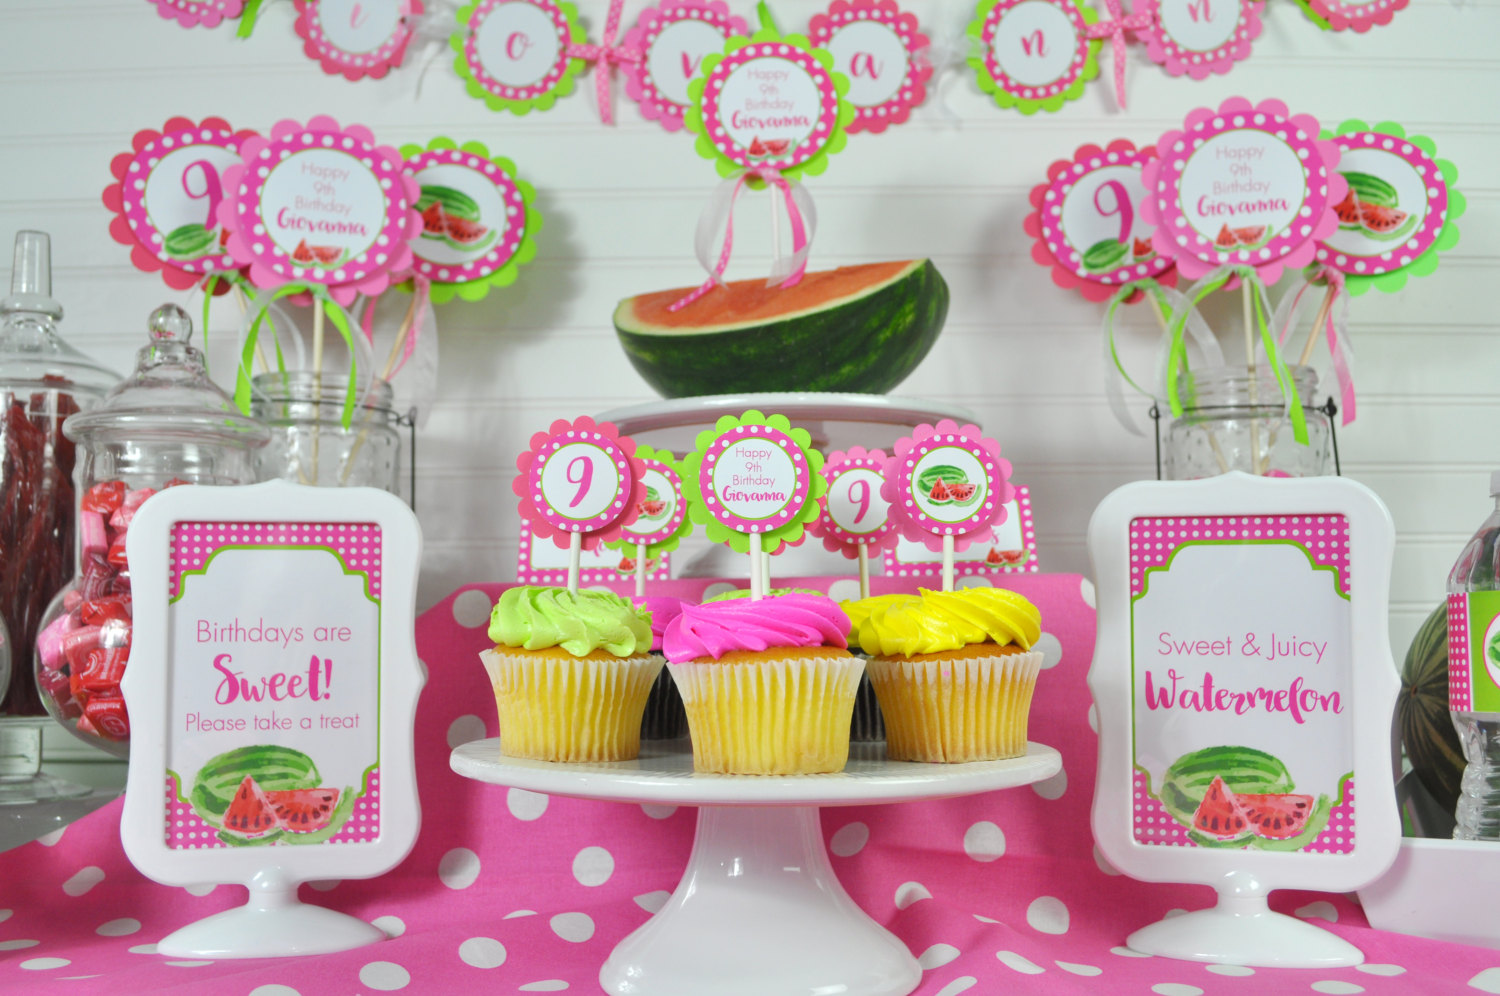 Watermelon Cupcake Toppers Birthday Party Personalized Decorations